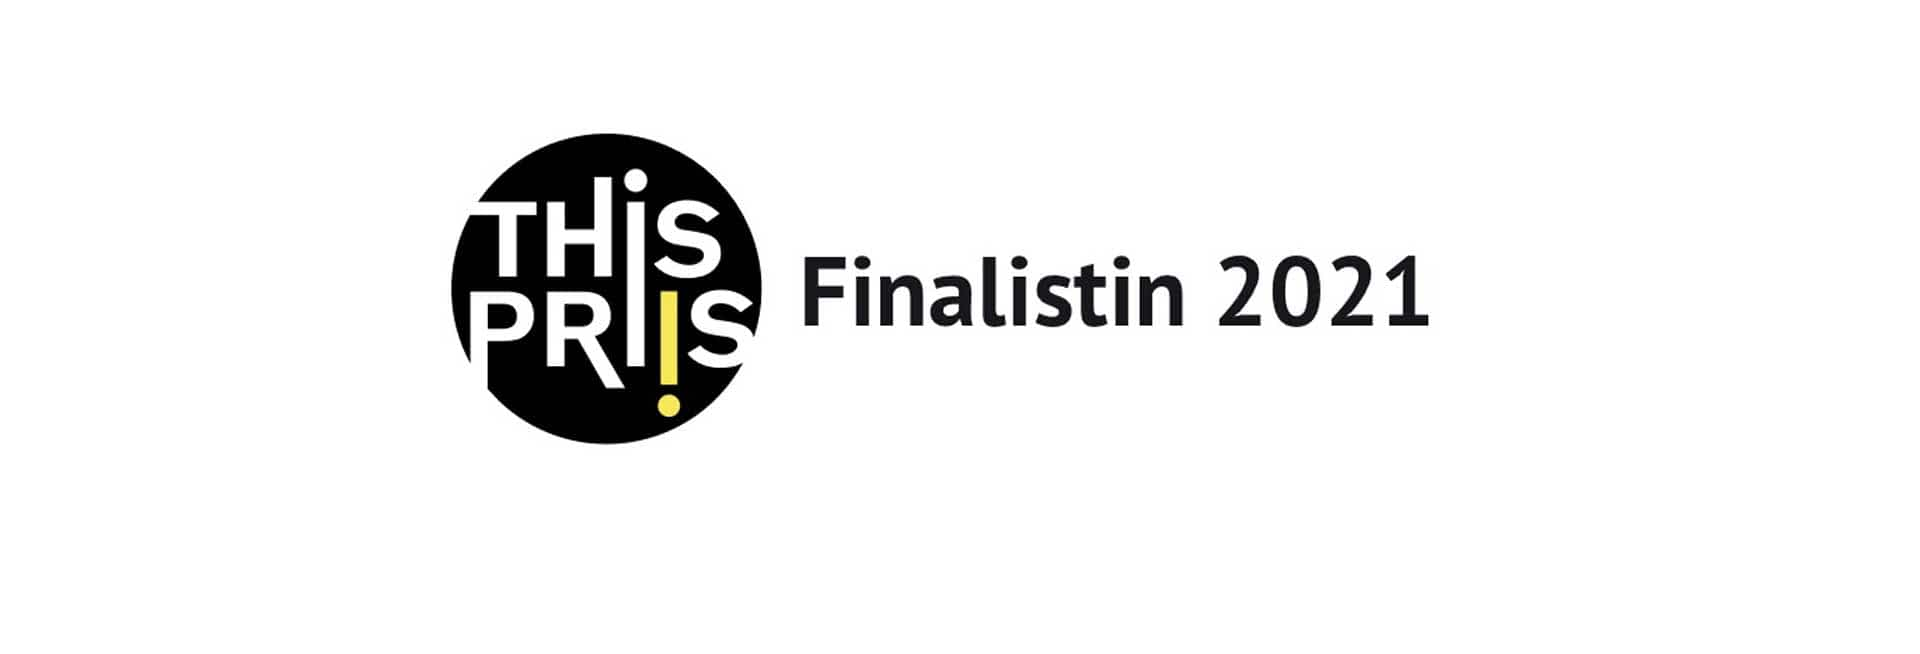 Cargocare is one of the five finalists for this year's This-Priis!